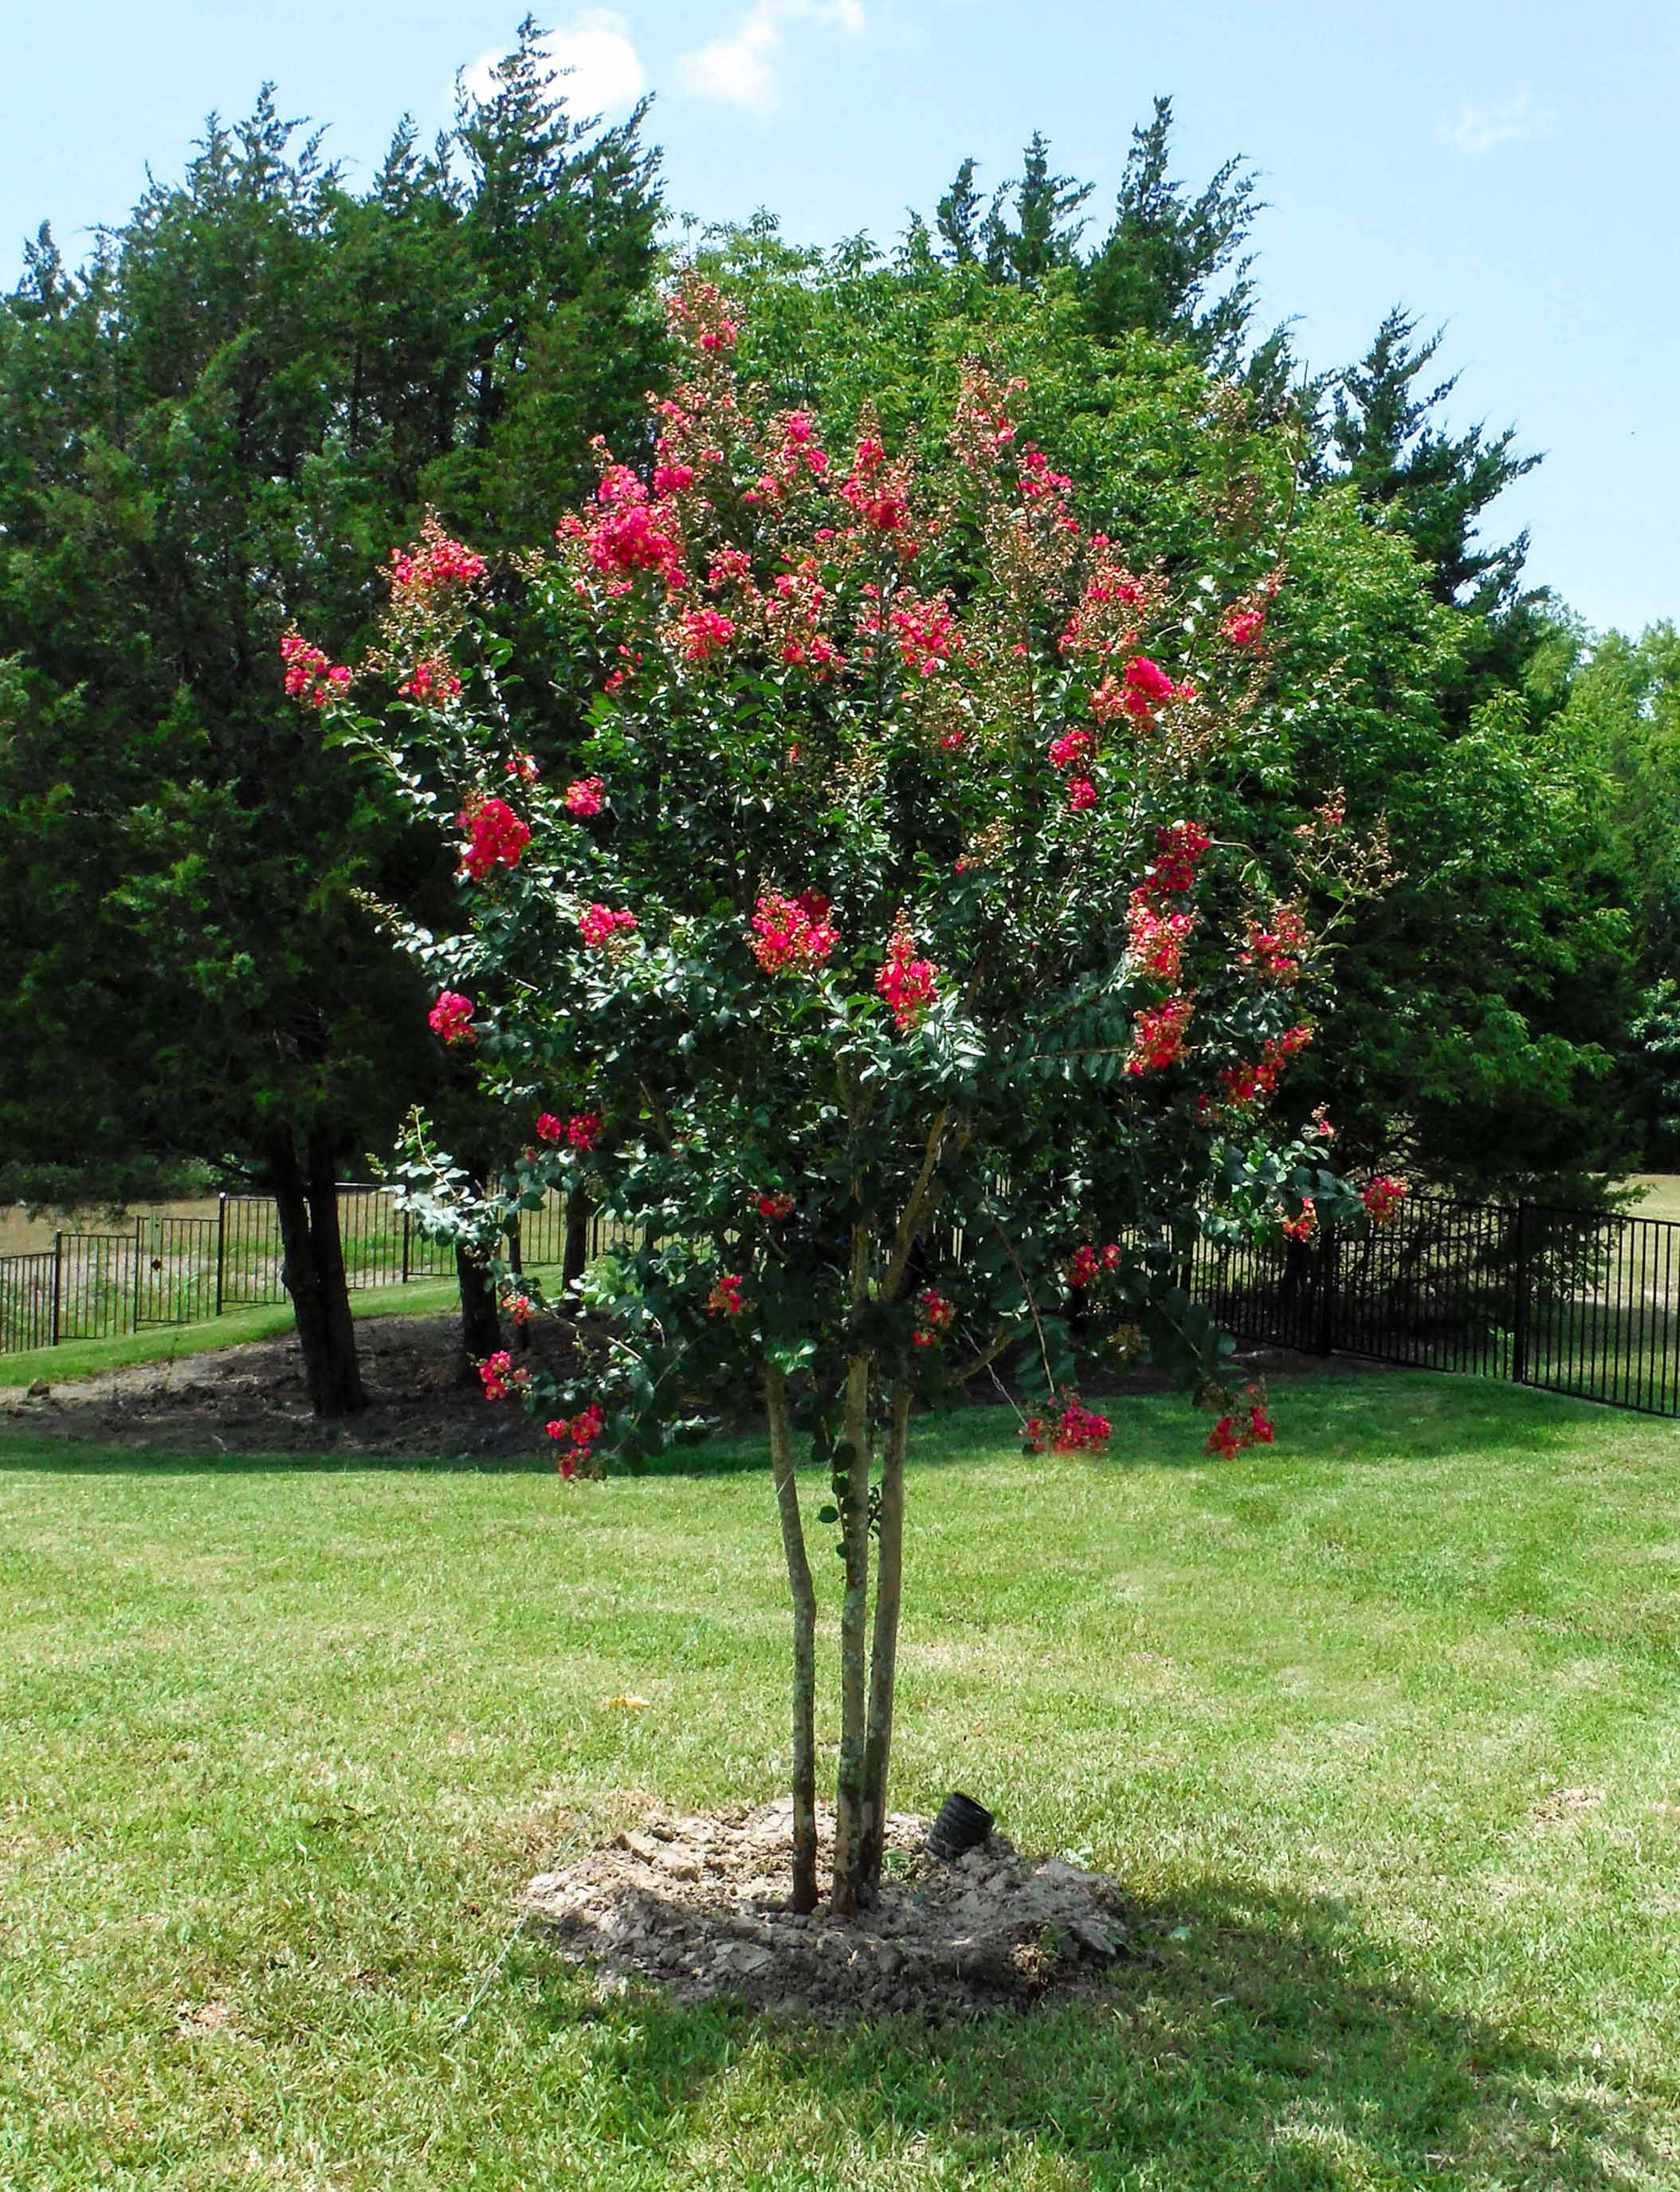 Tuscarora Crape Myrtle tree blooming with bubble gum pink flowers. Installed by Treeland Nursery.